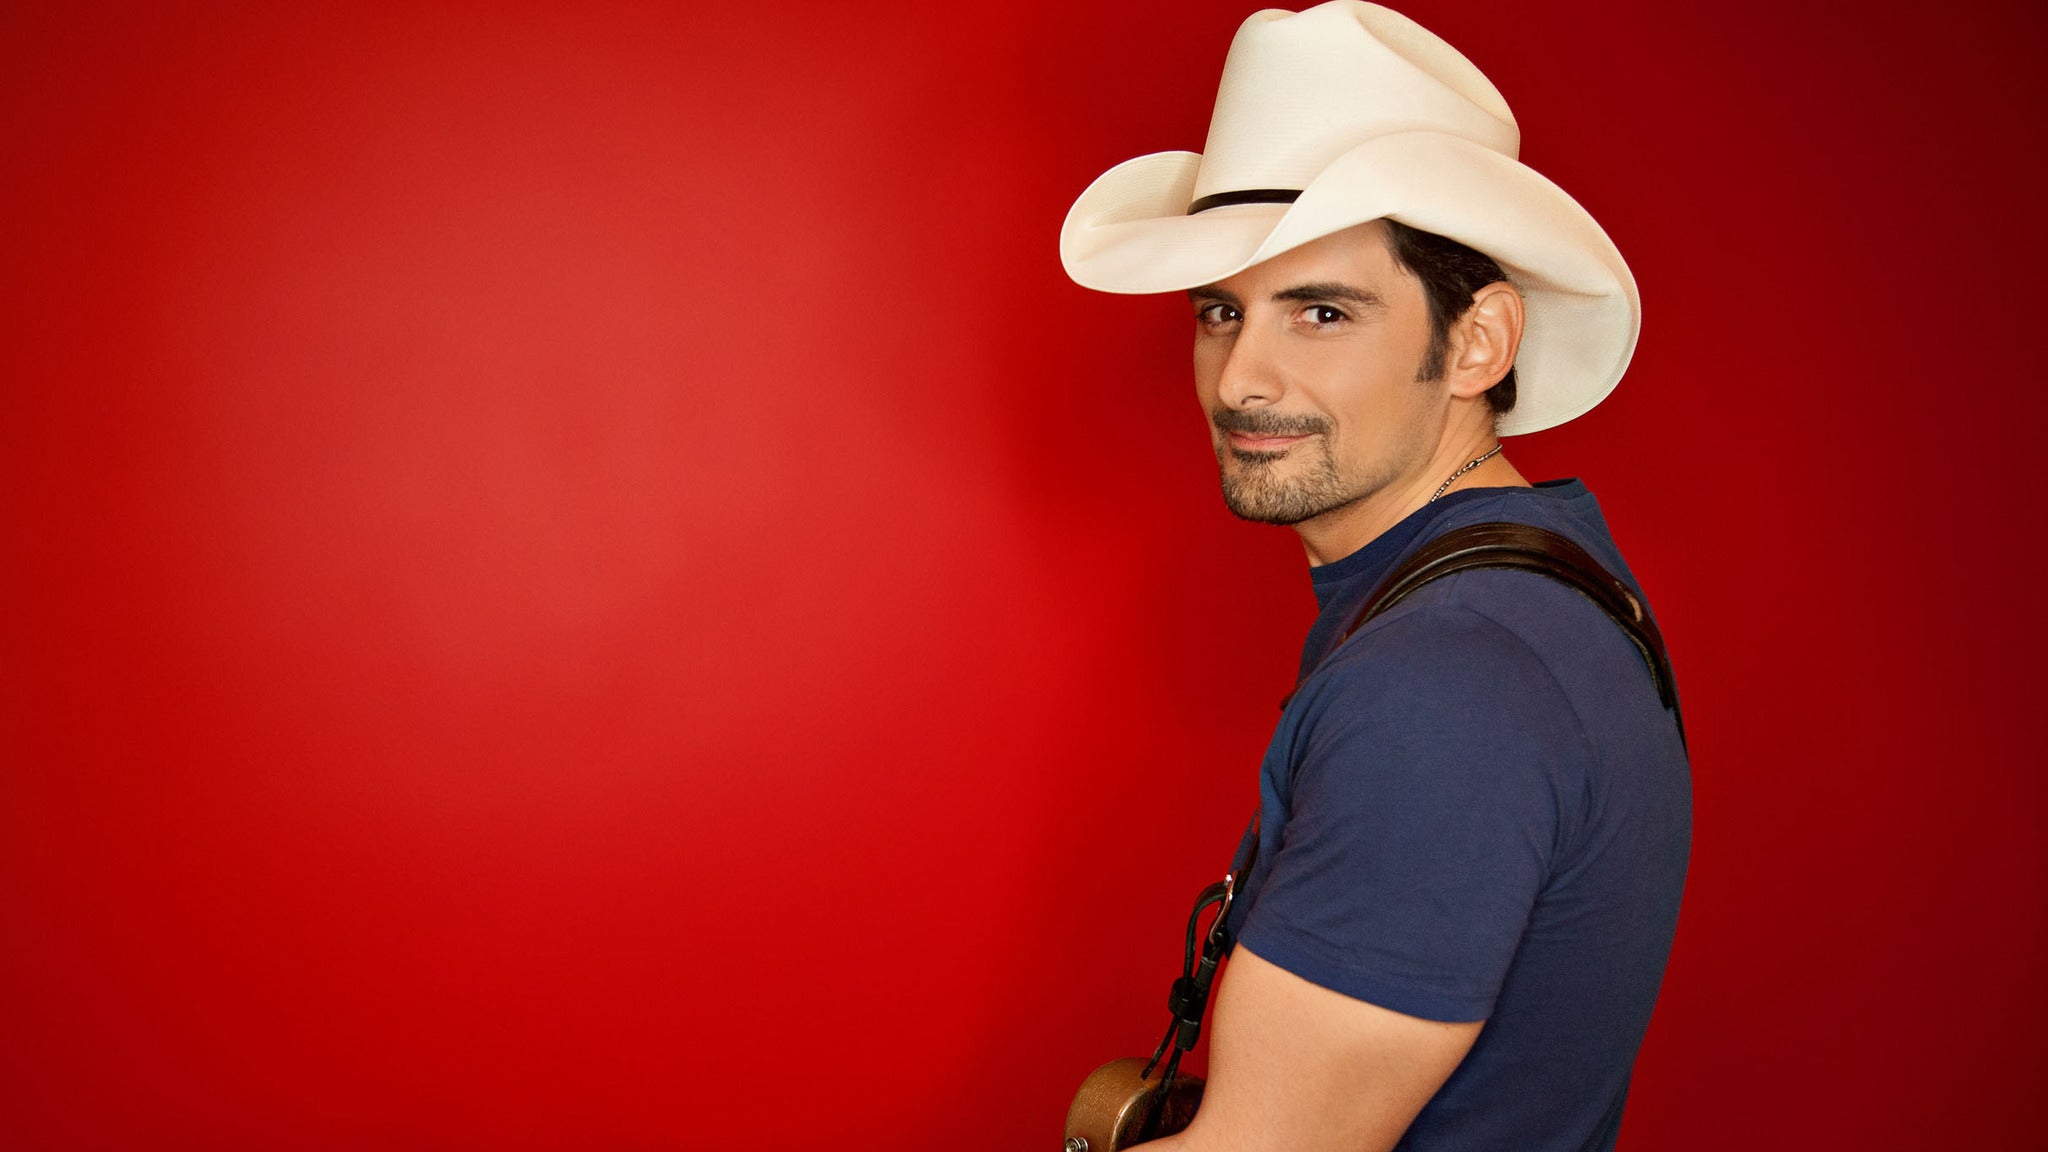 Brad Paisley at Paragon Casino Resort